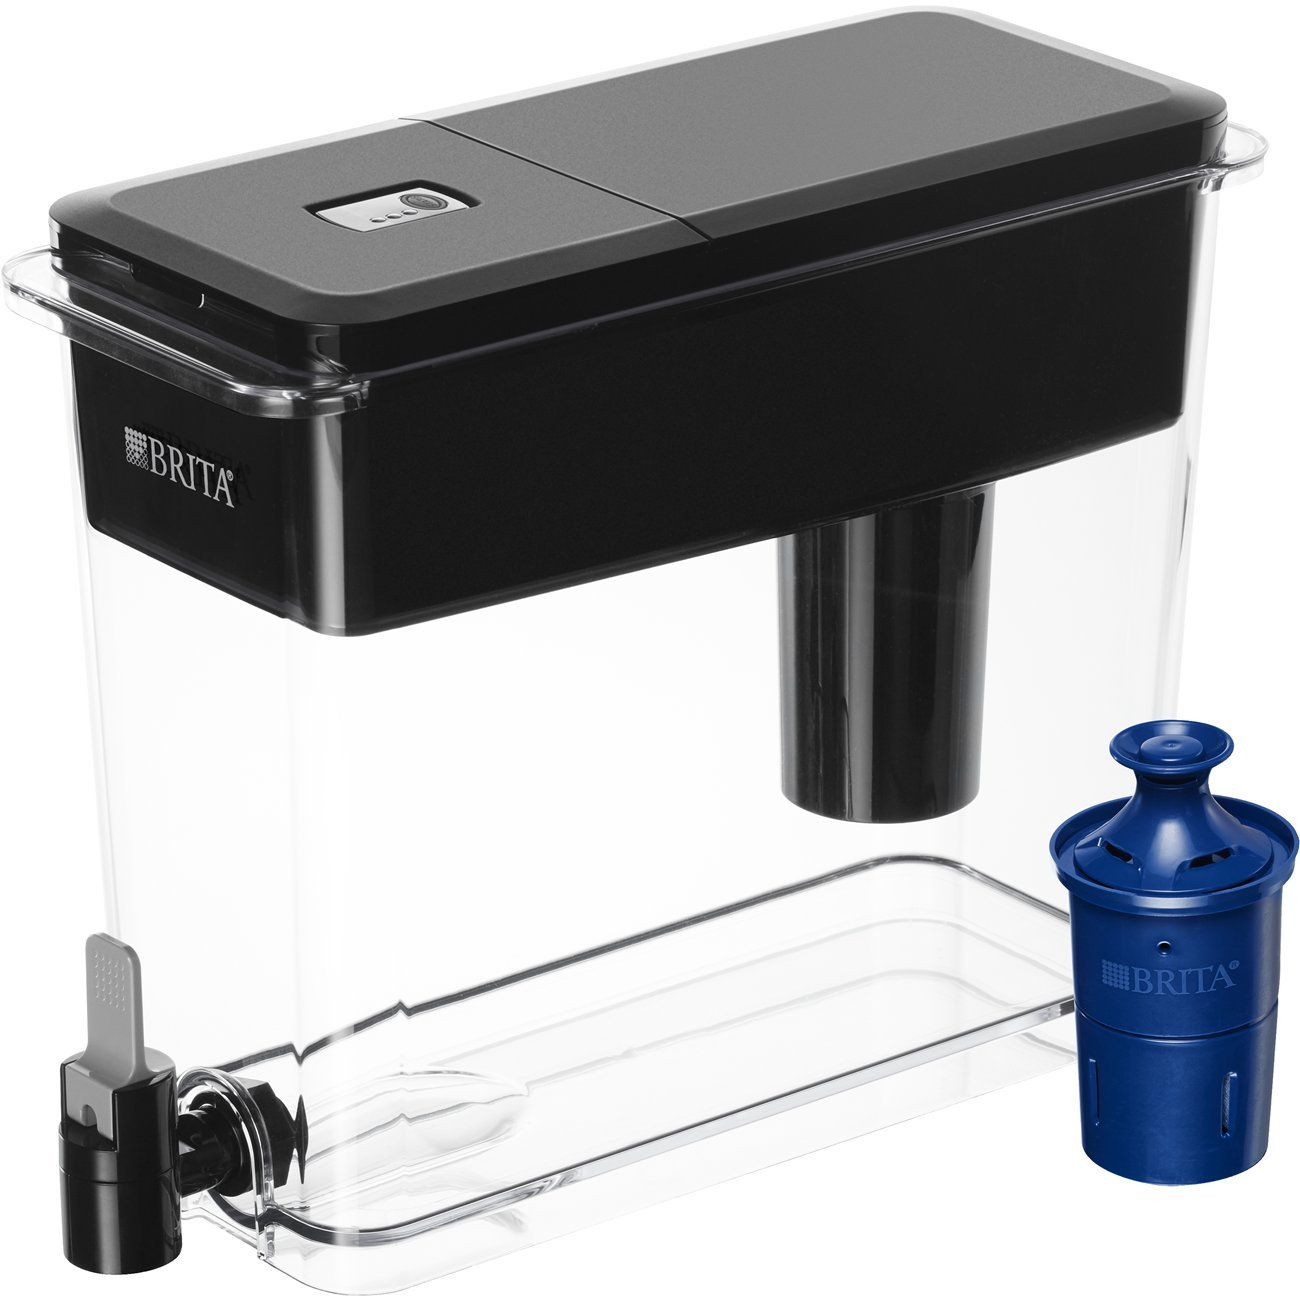 Brita Extra Large 18 Cup Filtered Water Dispenser with 1 Longlast Filter, Reduces Lead, BPA Free – Ultramax, Jet Black by Brita (Image #1)